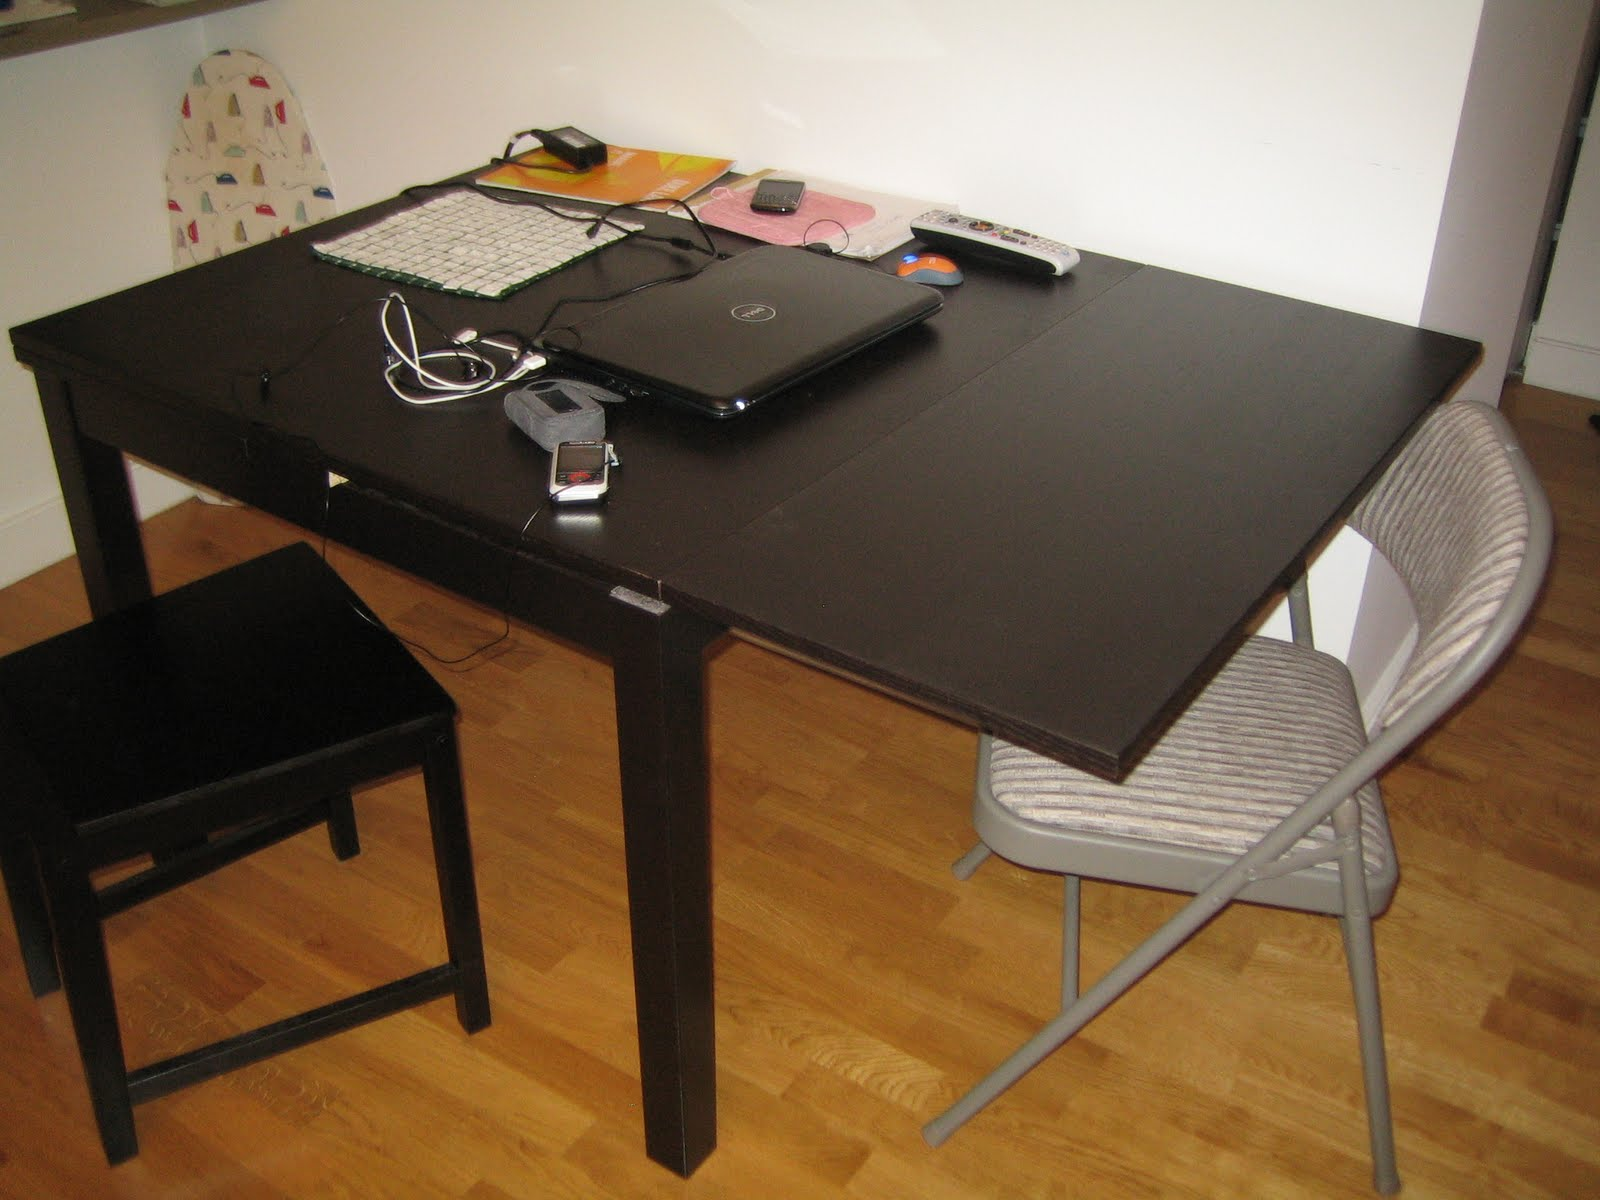 ISLAND LISTINGS MOVING SALE IKEA TV STAND DINING TABLE DESK